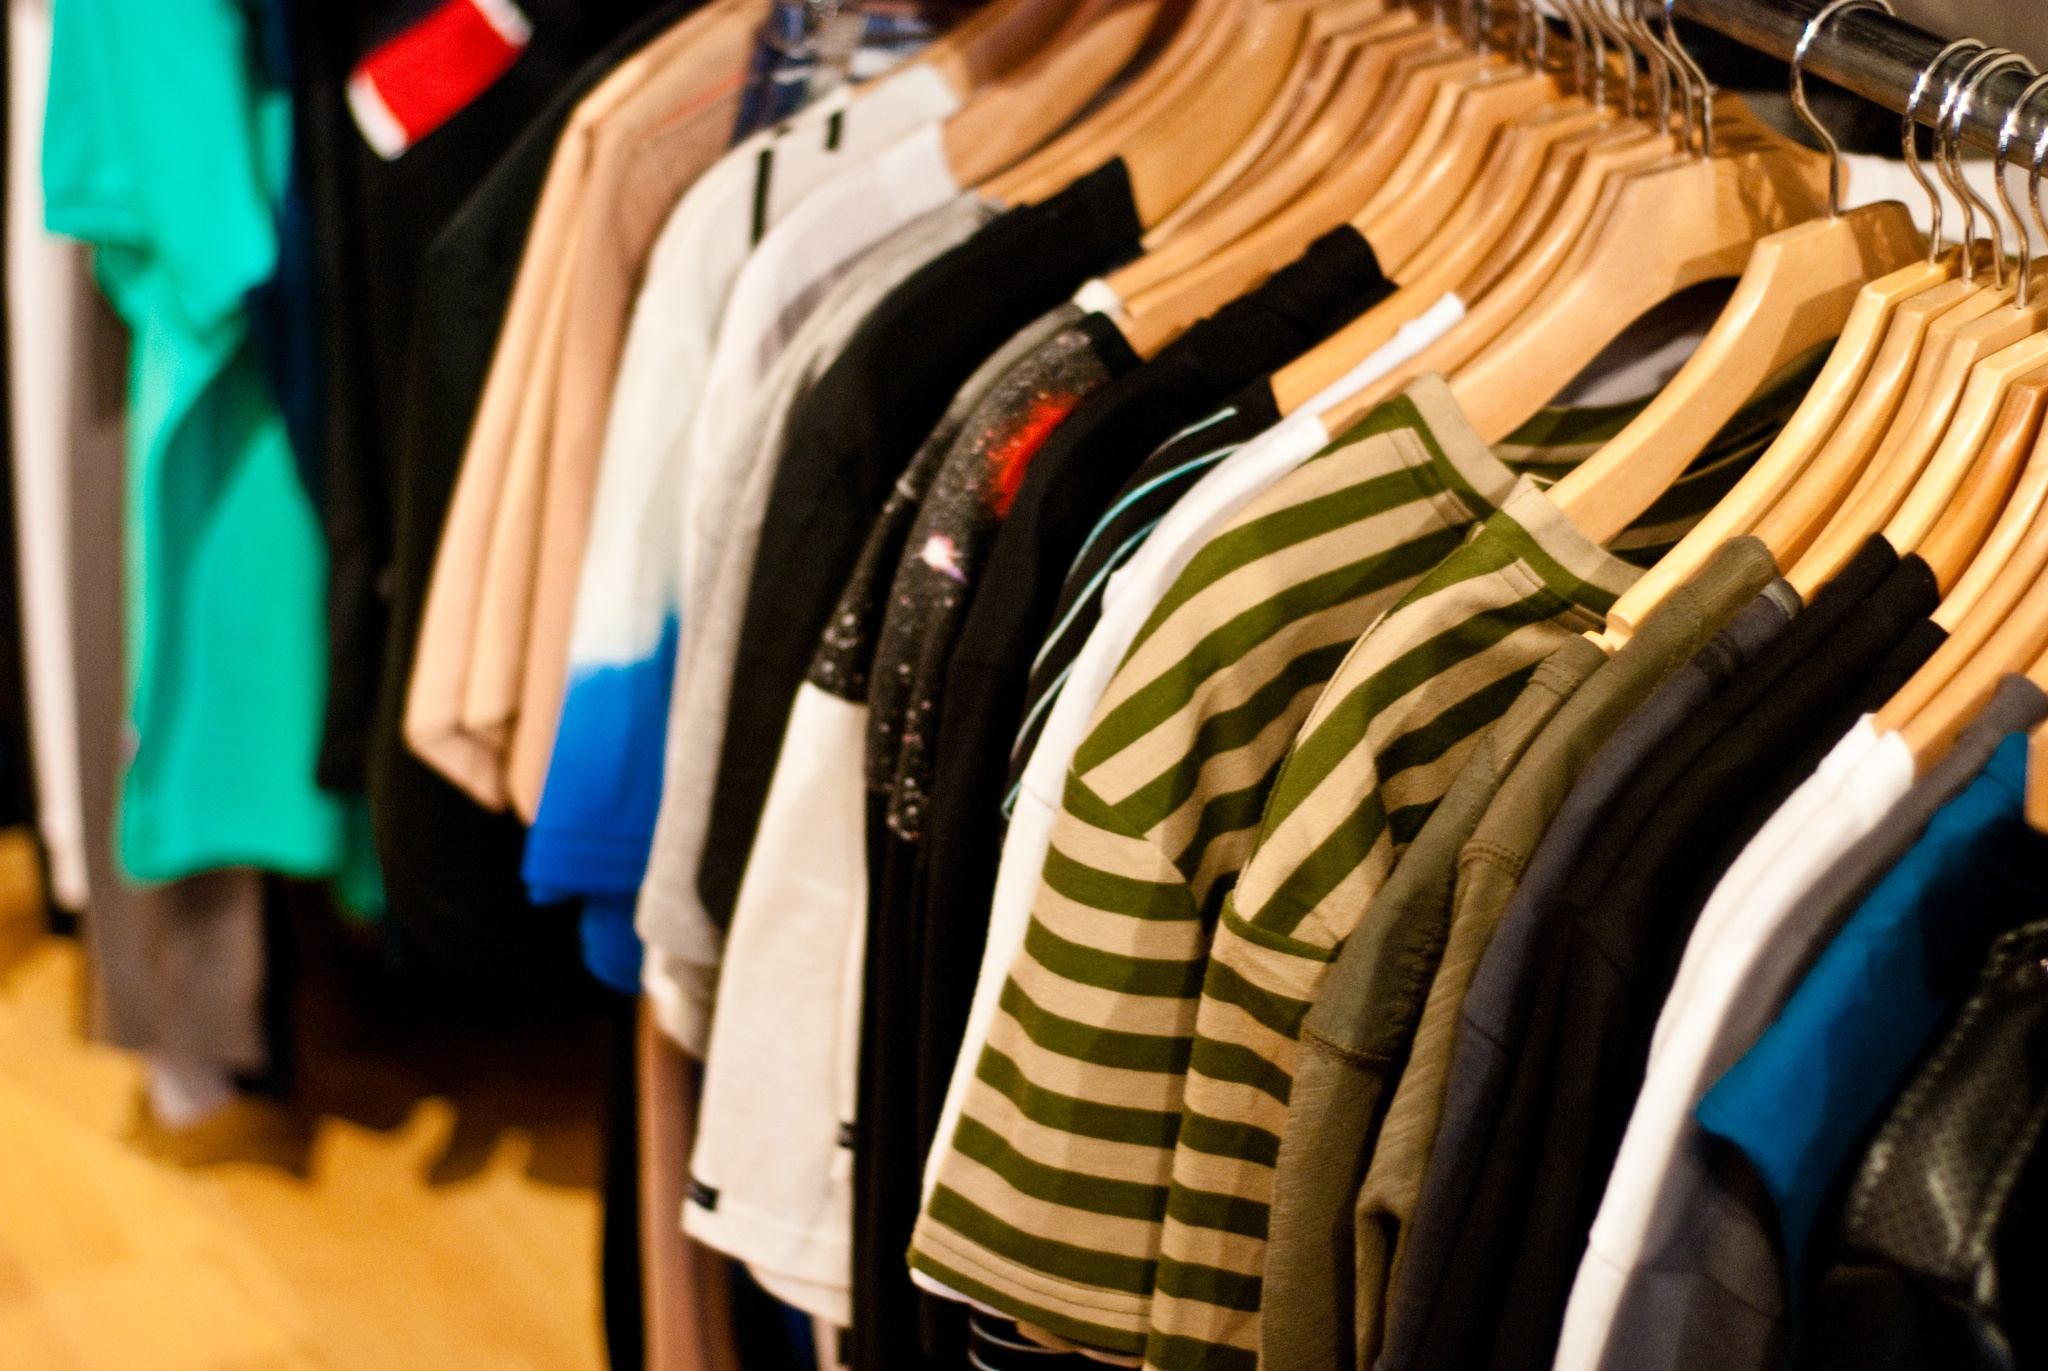 27% of apparel sales are now online